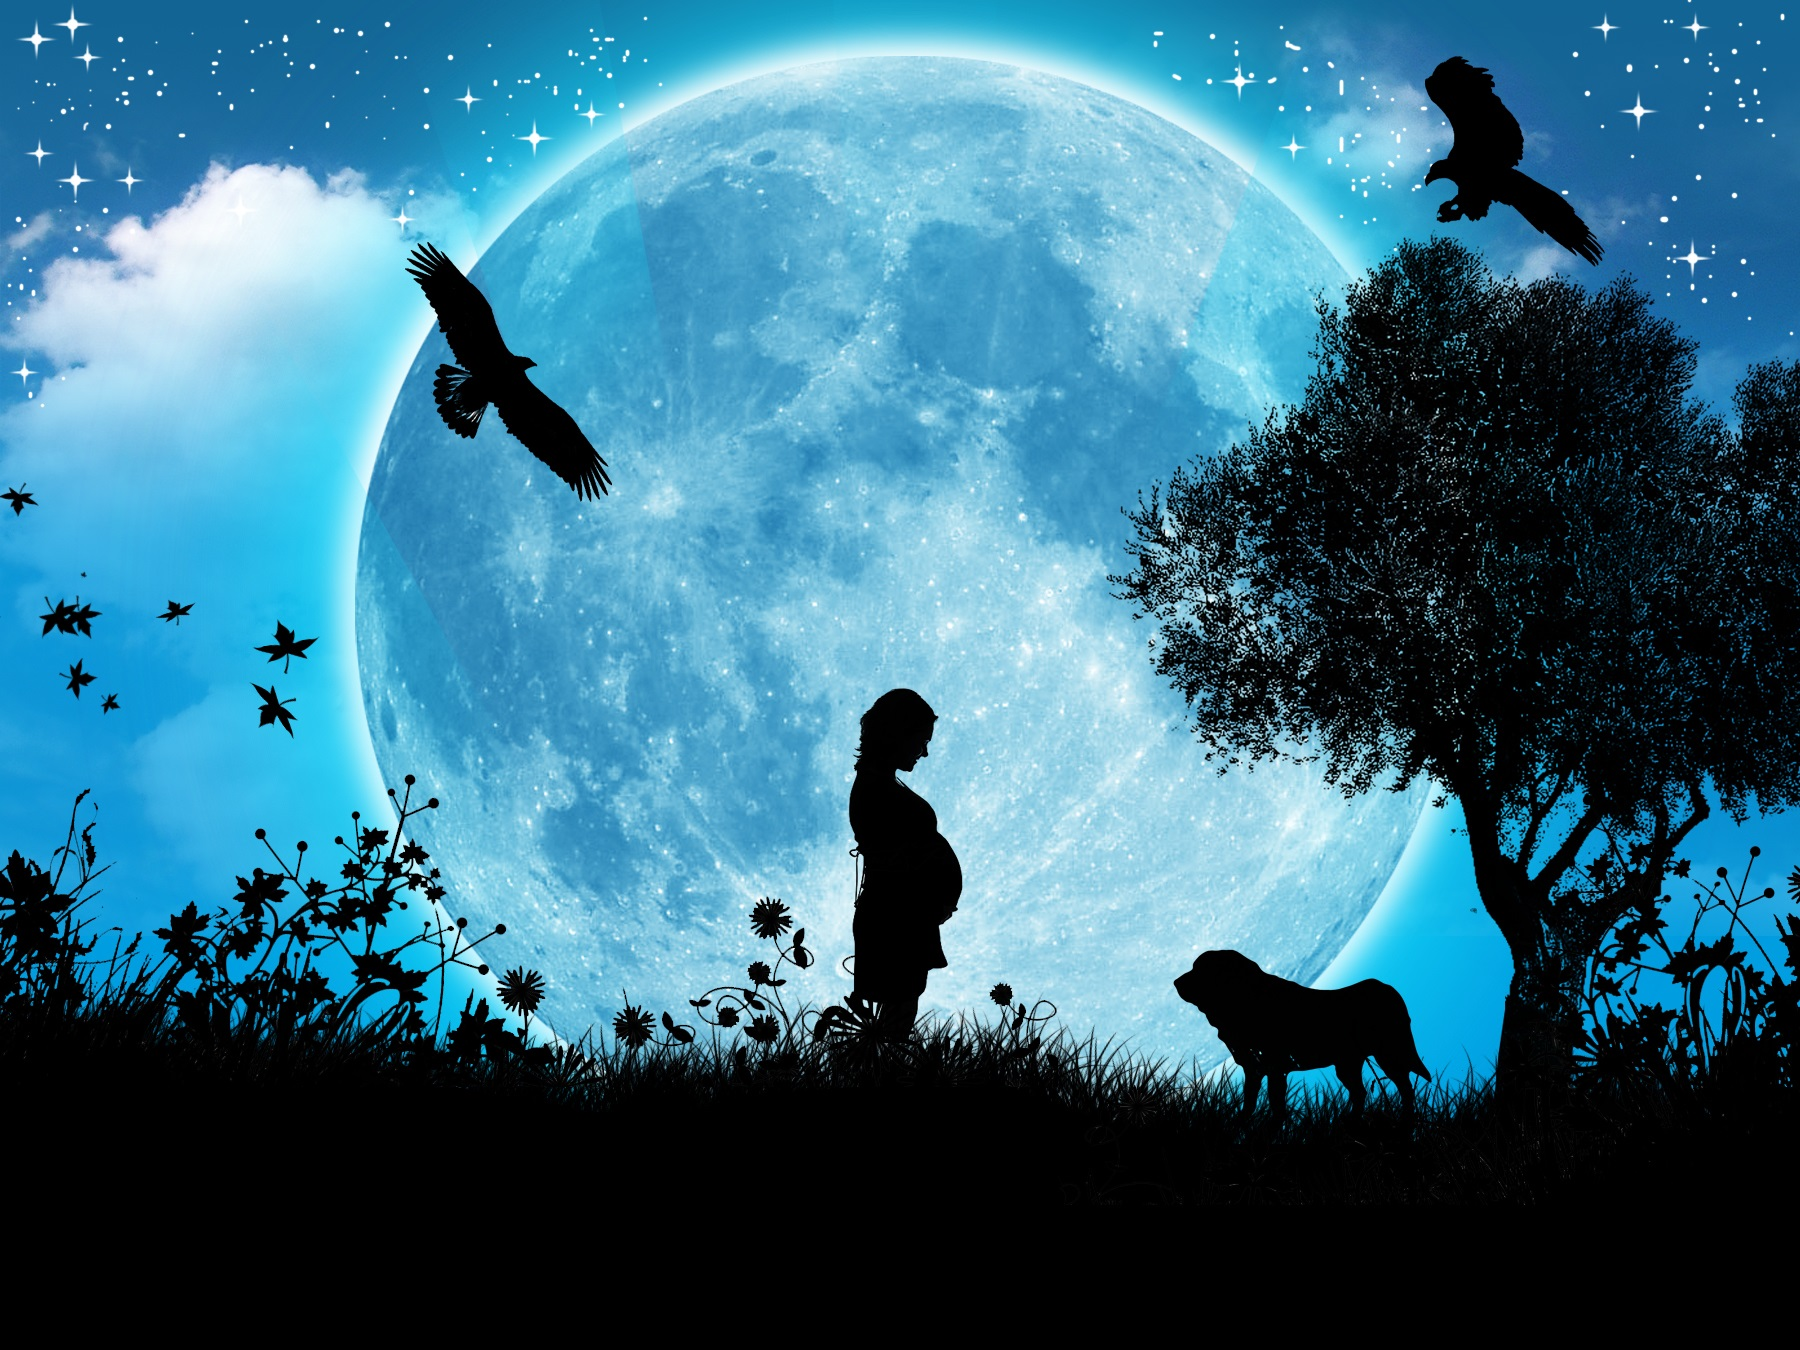 Blue Moon Wallpapers & Photo